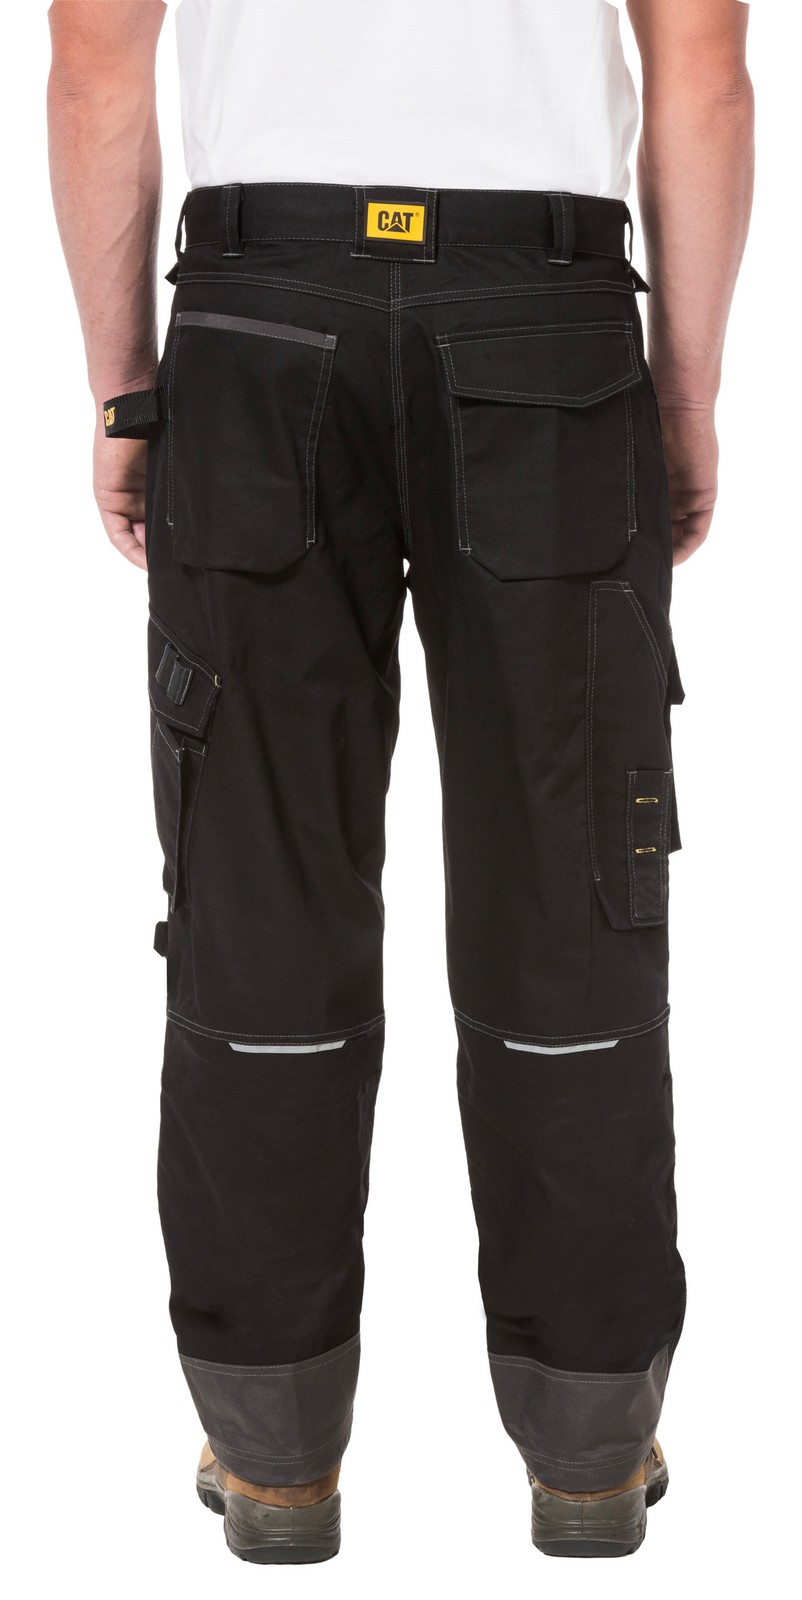 outlet store 916c4 29b66 Caterpillar CAT CAT CAT h2o Defender Lavoro Pantaloni 2d10be ...